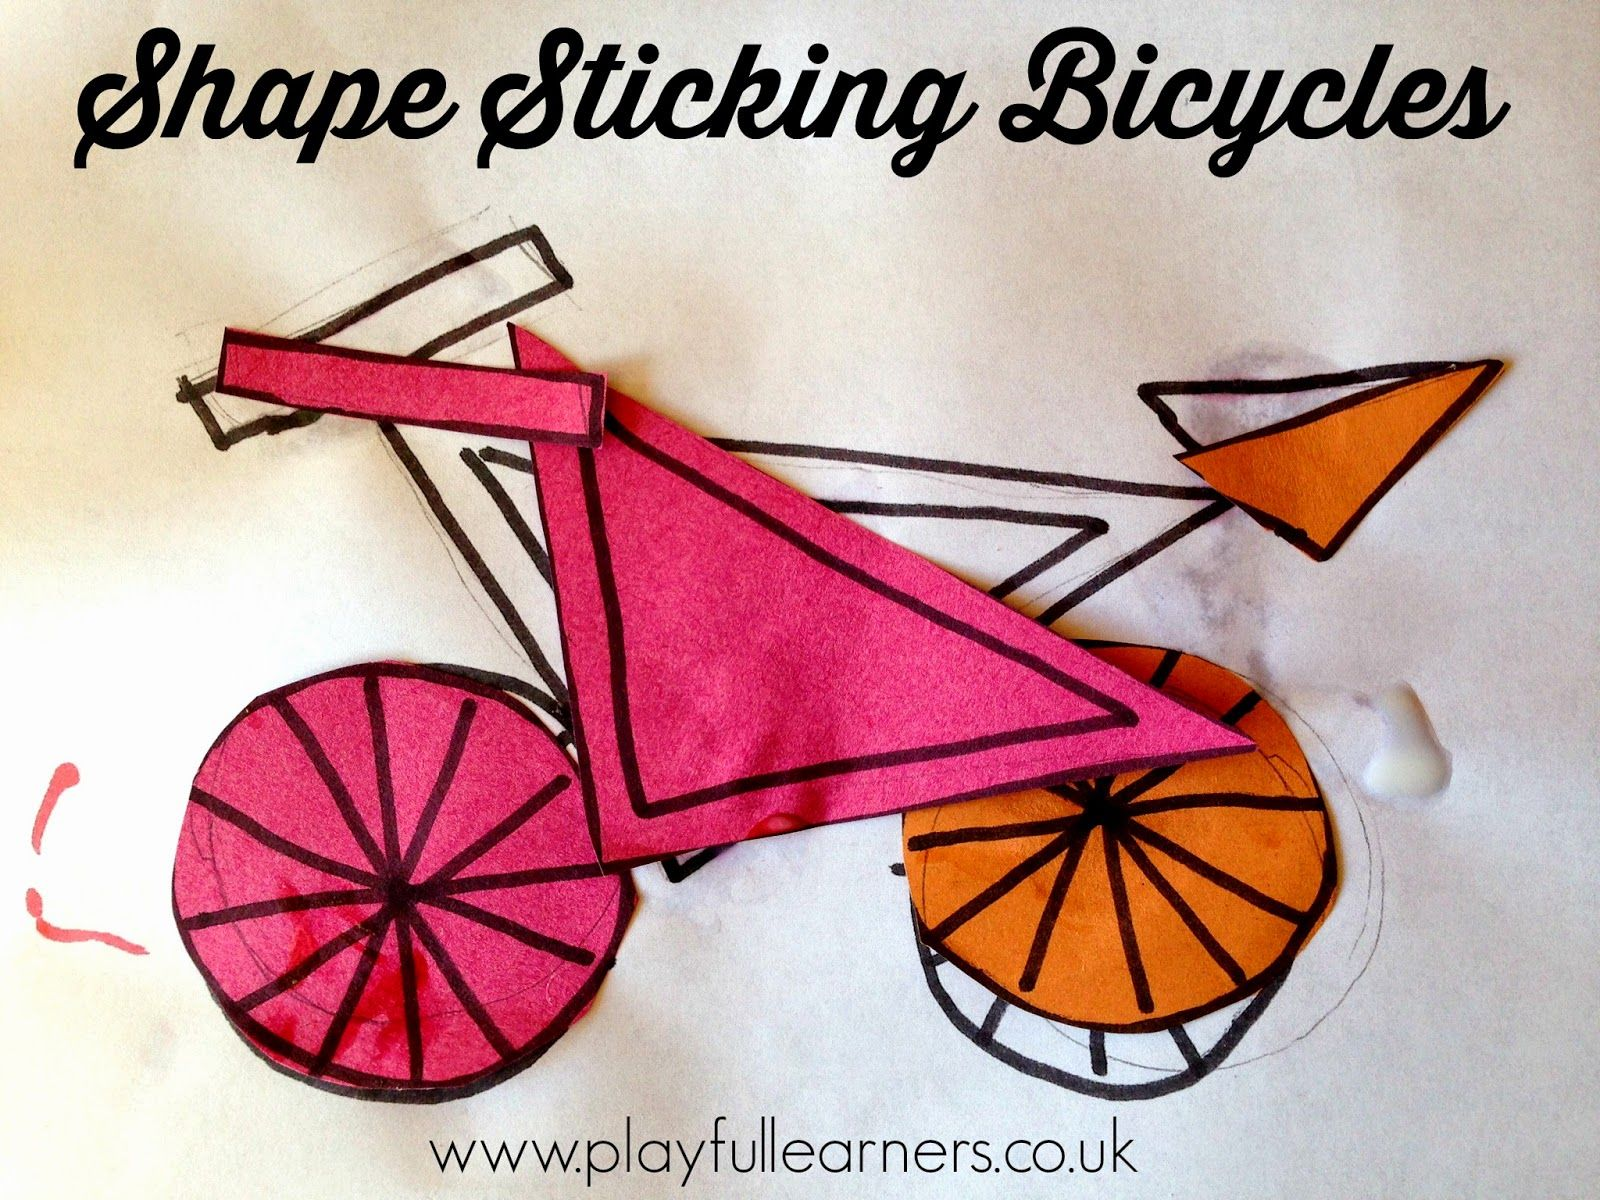 Playful Learners Shape Sticking Bicycles With Images